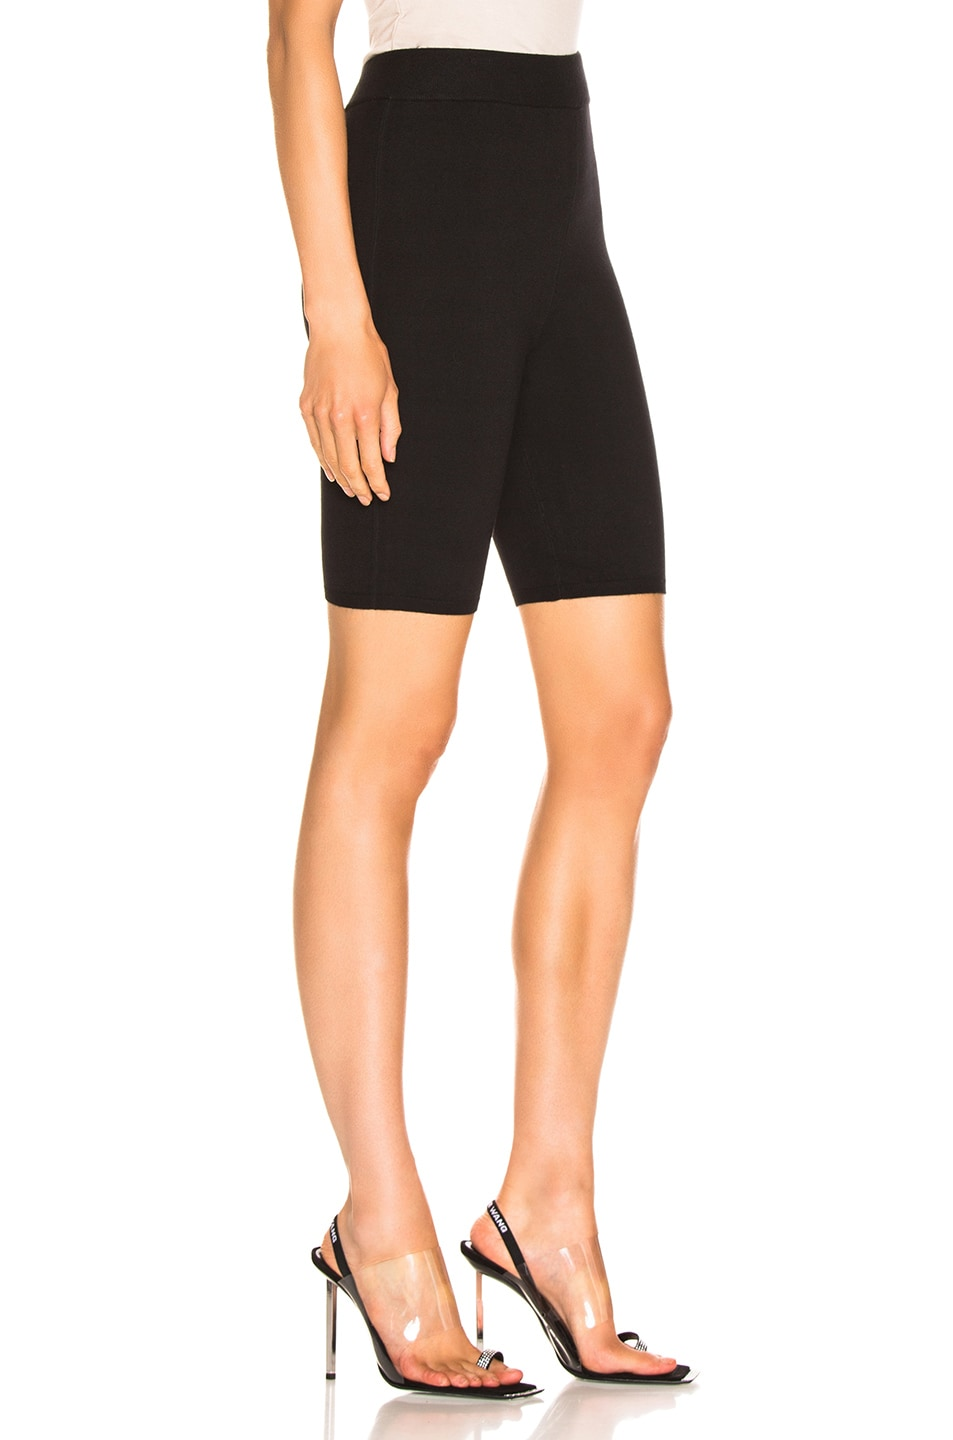 Image 2 of T by Alexander Wang Bodycon Basic Biker Short in Black